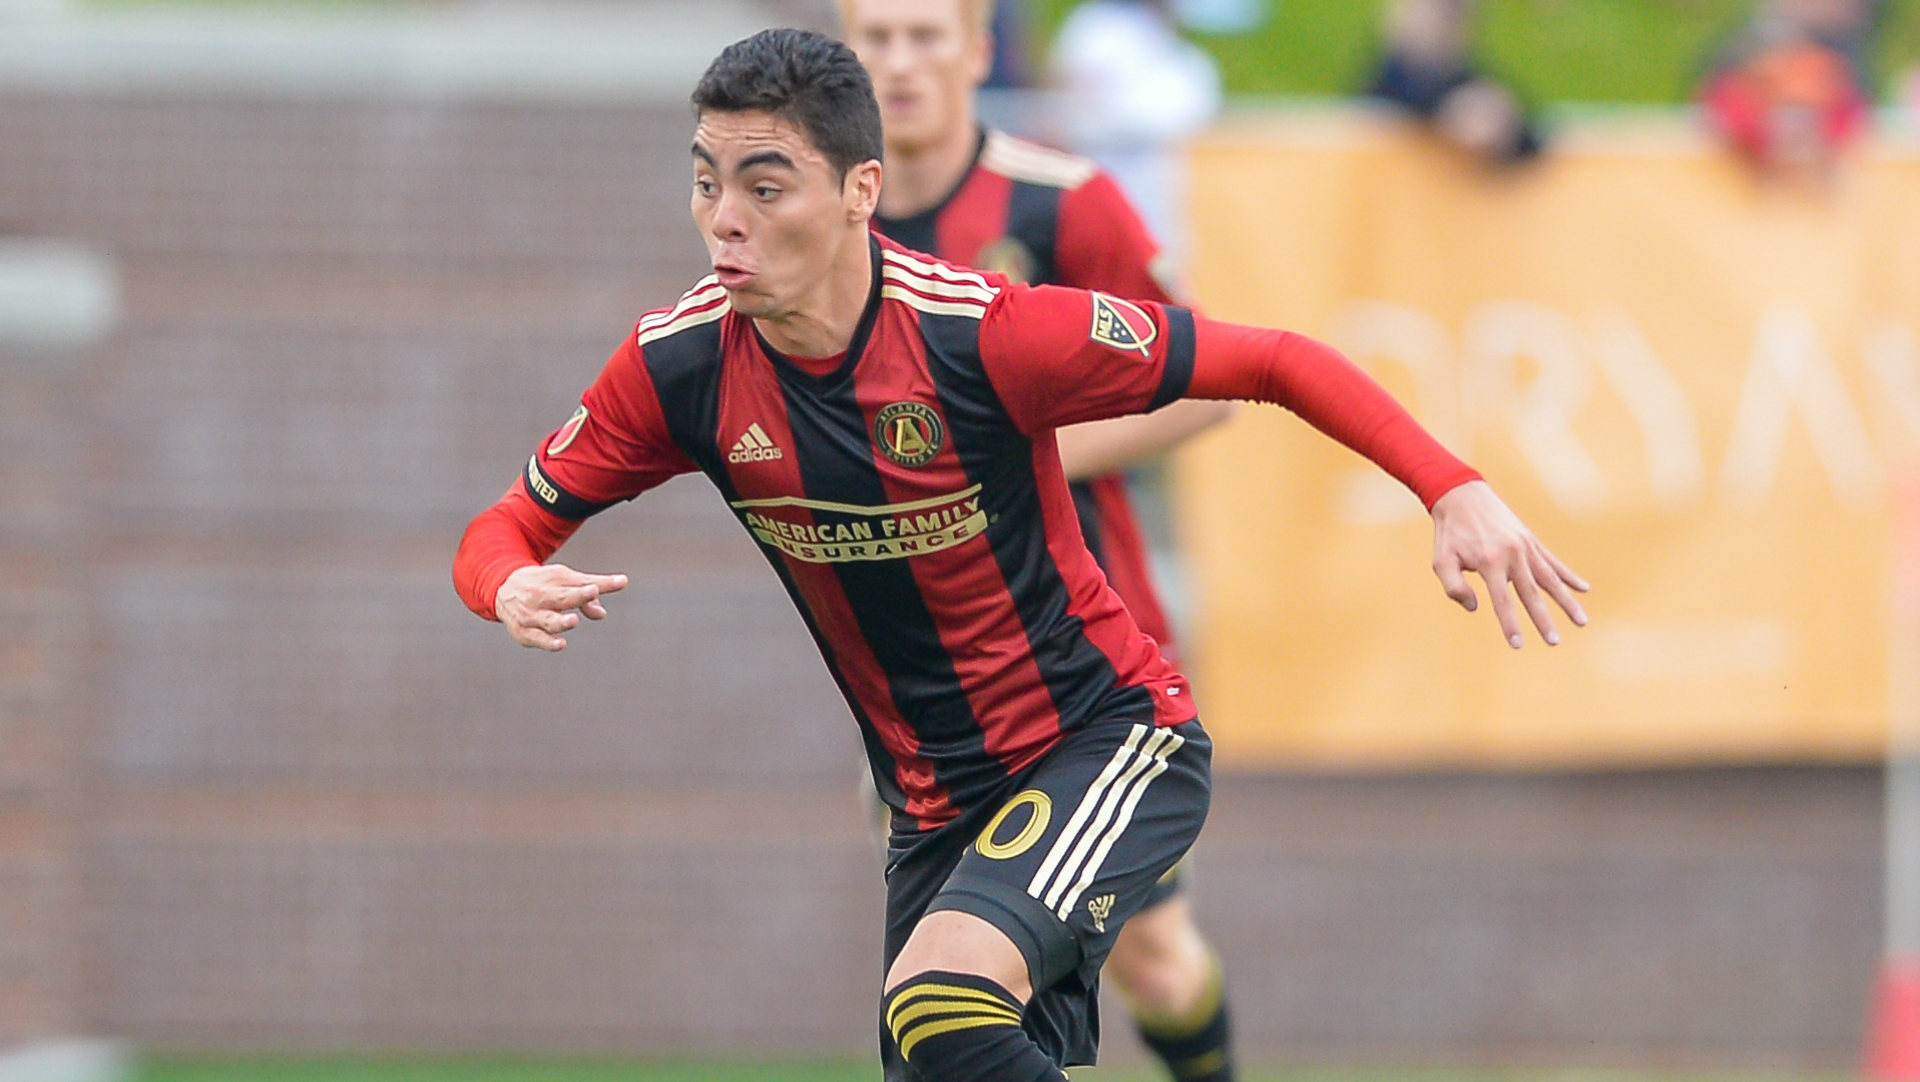 new concept 03c2c 11b7a Scouting Report: Miguel Almirón – Breaking The Lines